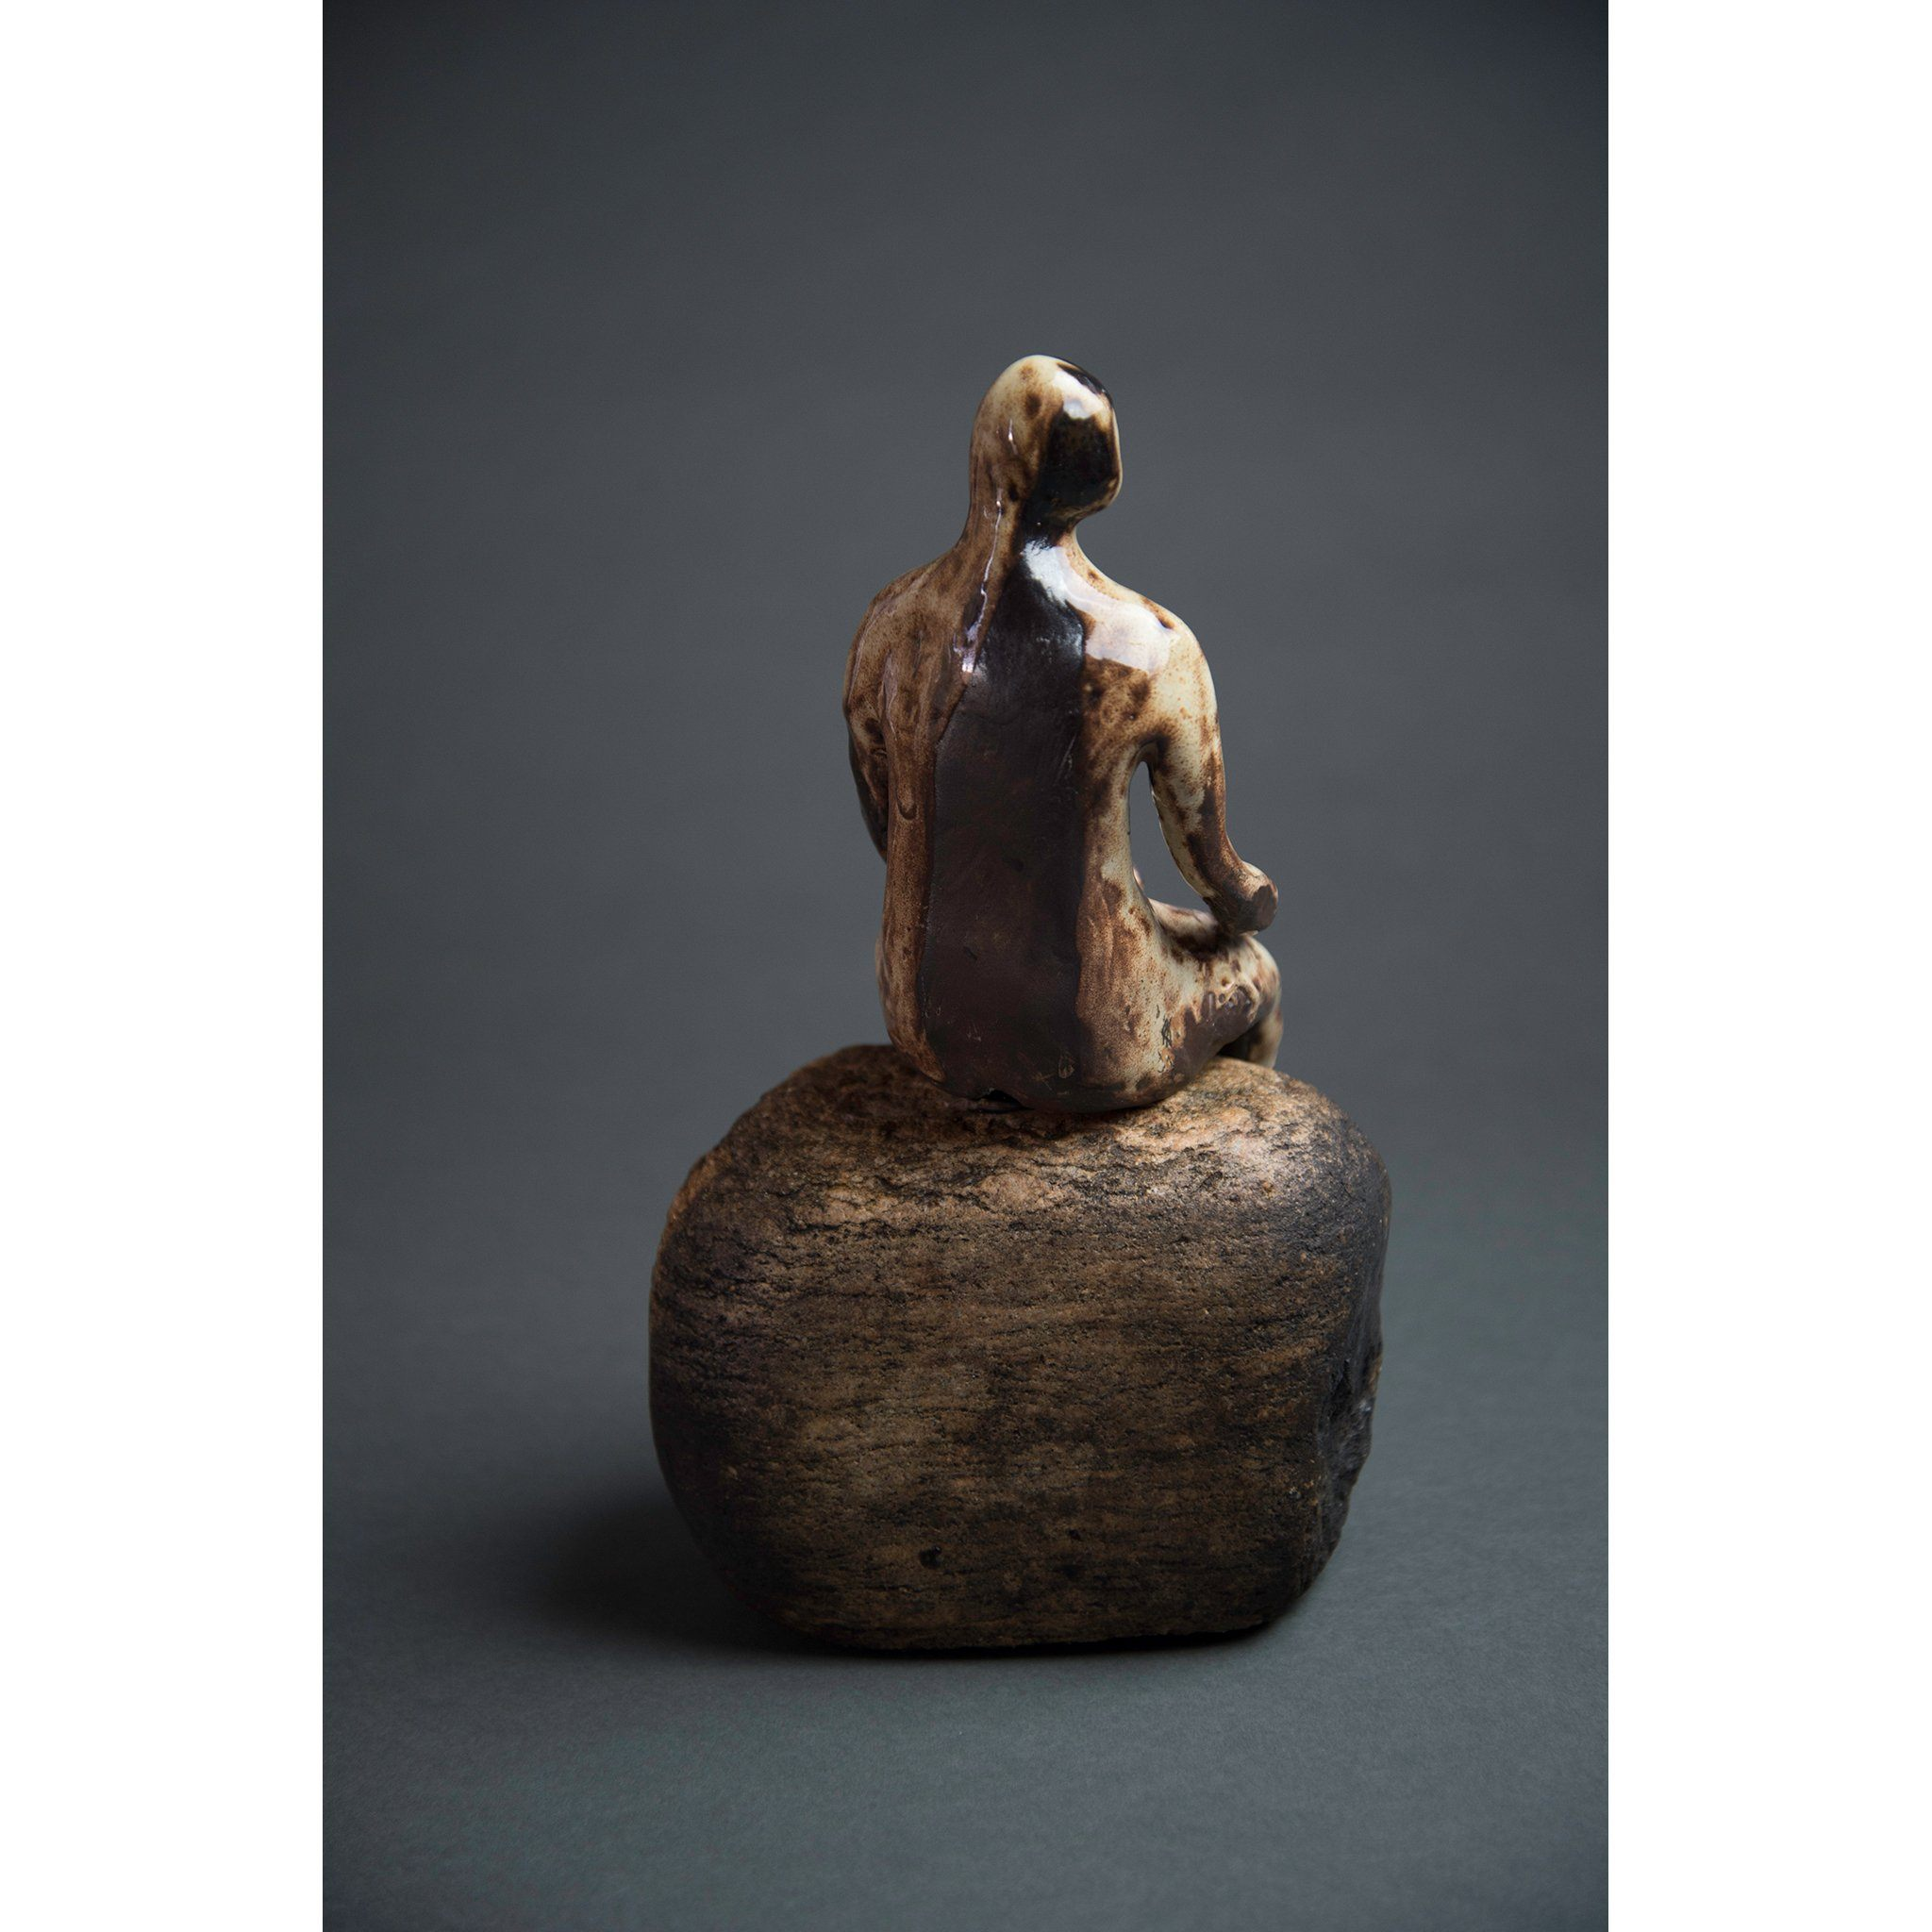 Man on Rock 1, Clay Sculpture and Stone (10.75x6x5) - Norlynne Coar Fine Art